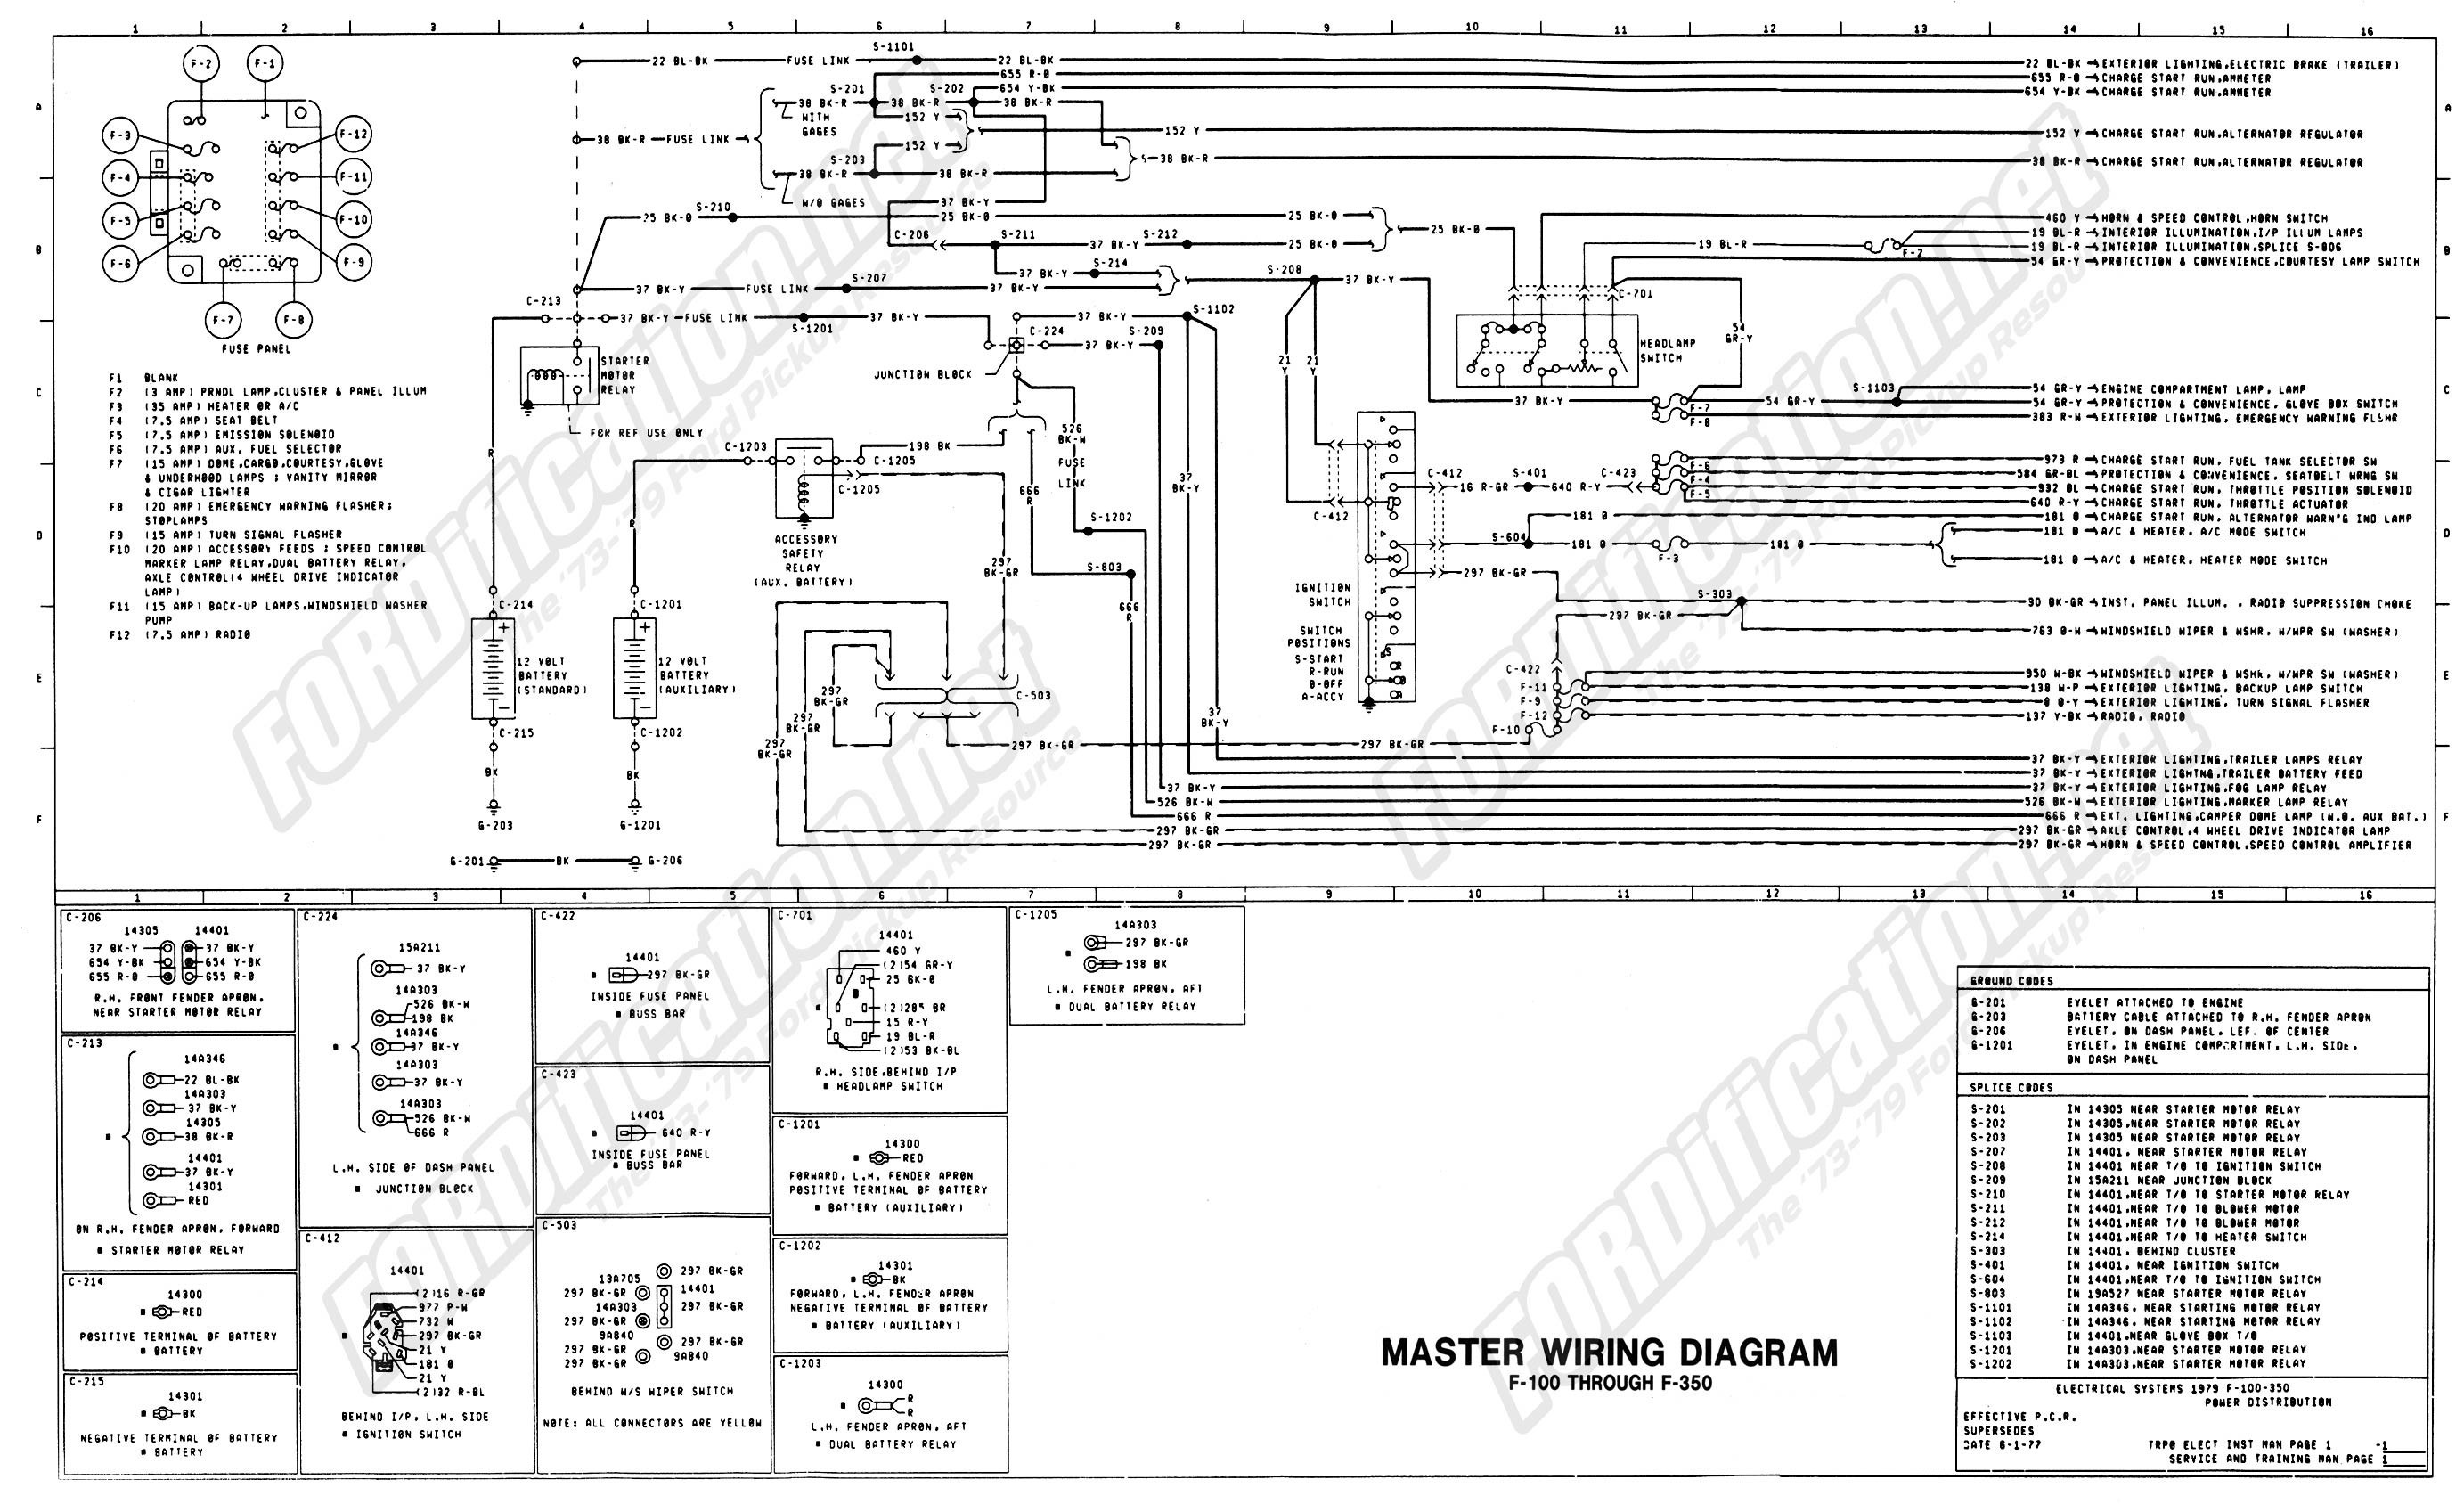 Starter Solenoid Wiring Diagram Ford Inspirational Remote For Car Fresh 79 F150 Truck Enthusiasts Forums